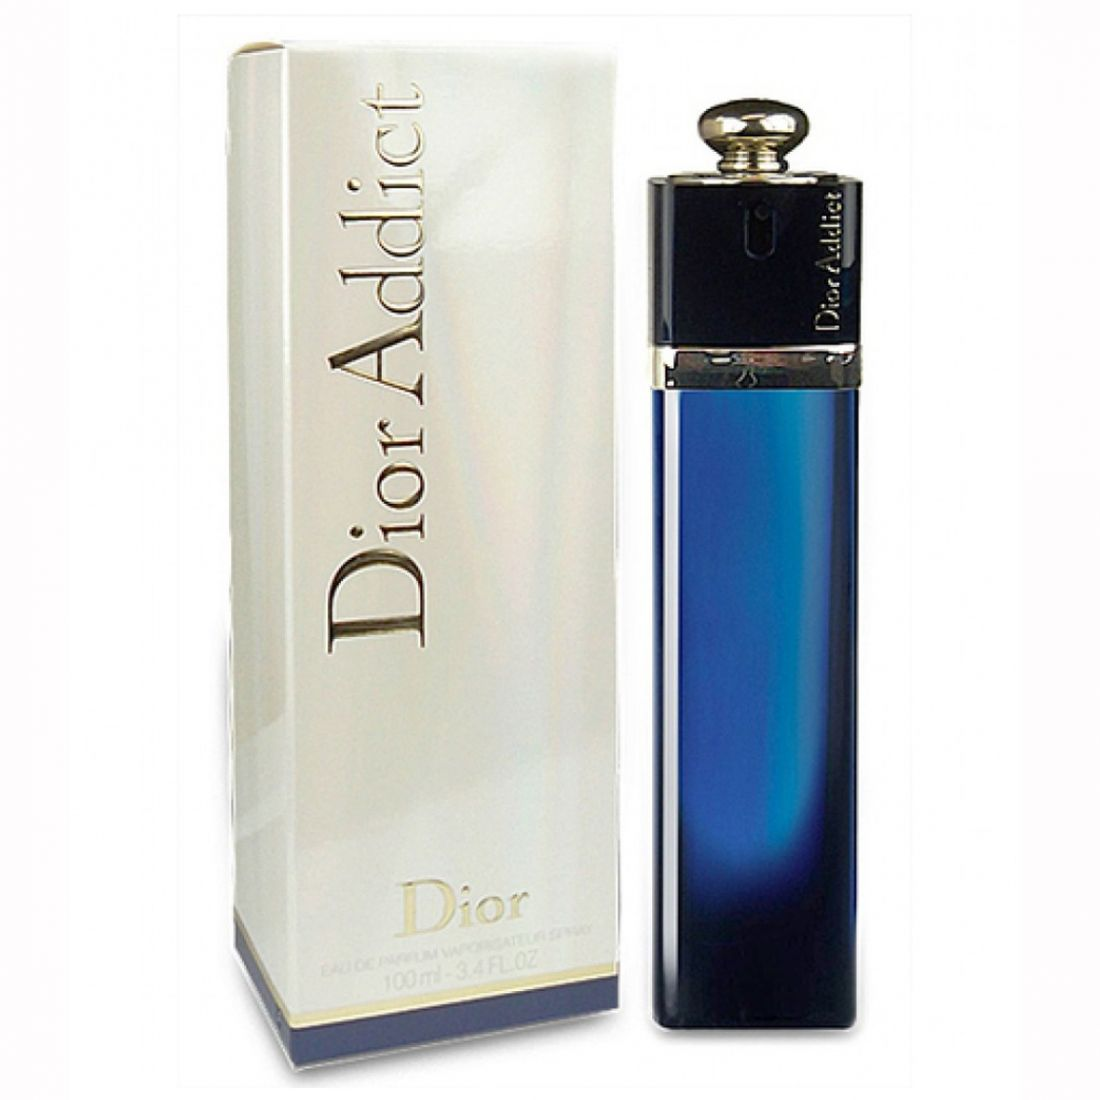 Christian Dior - Addict, 50 ml